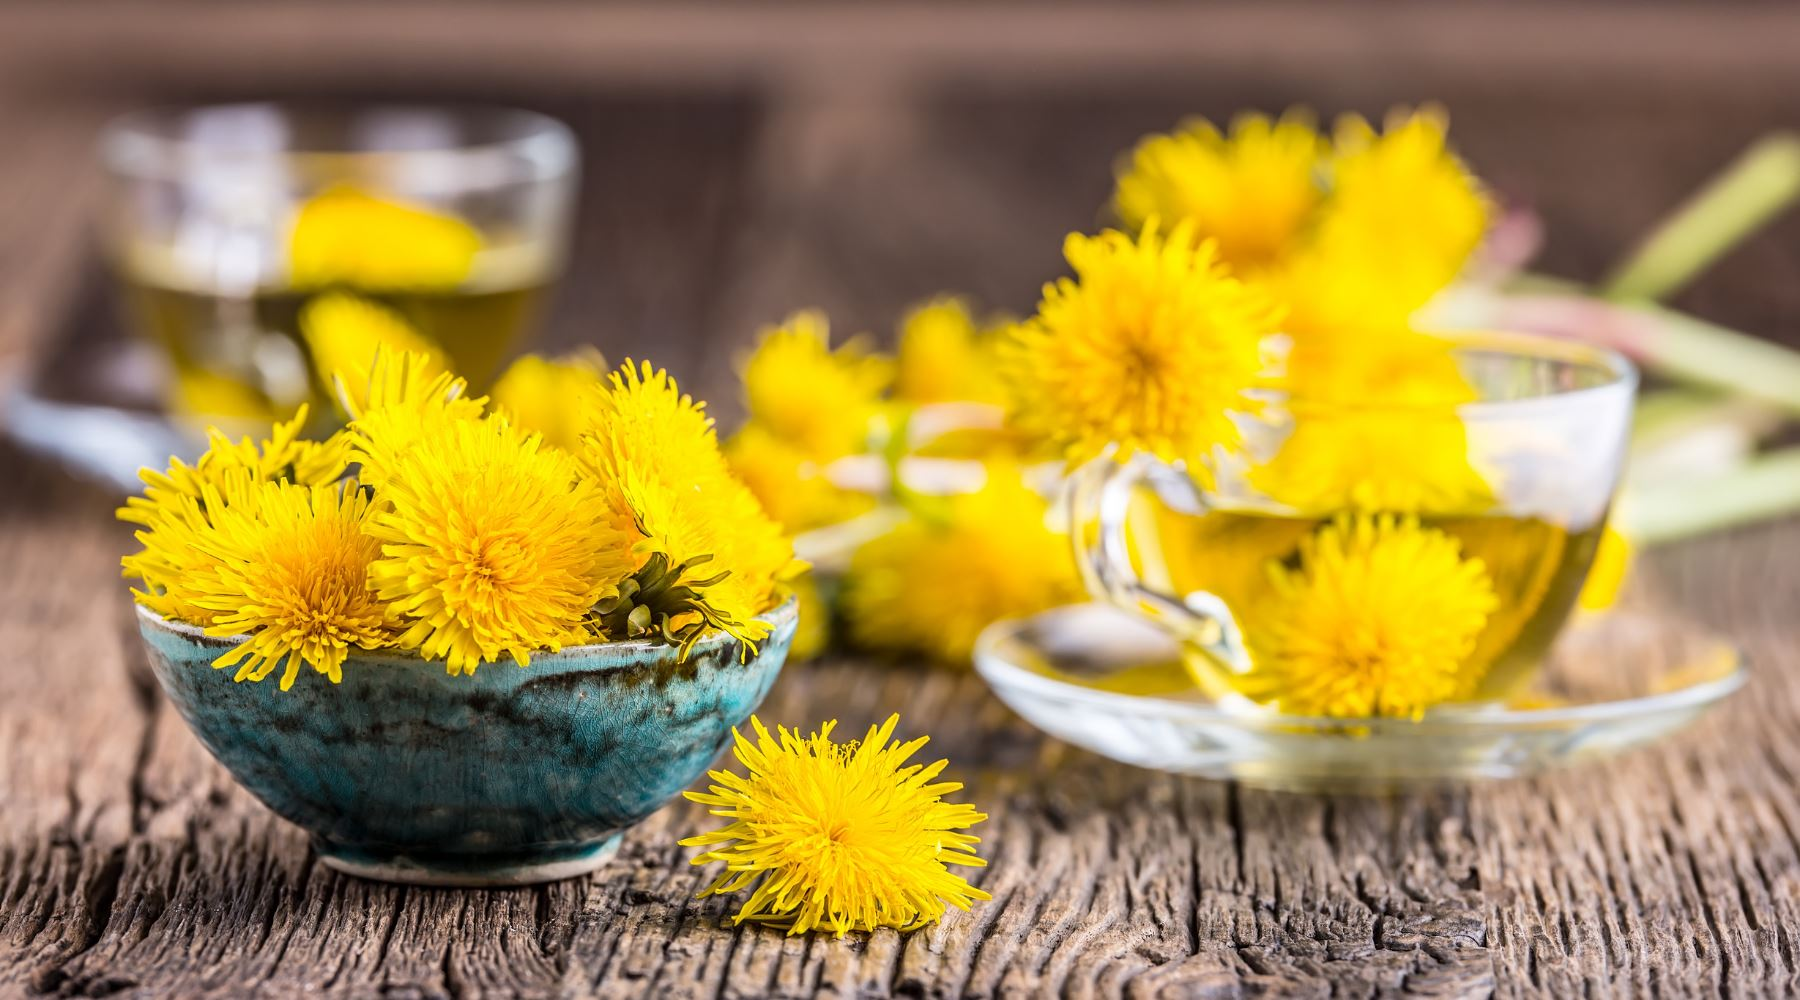 How to Make Dandelion Tea - Recipes and Benefits